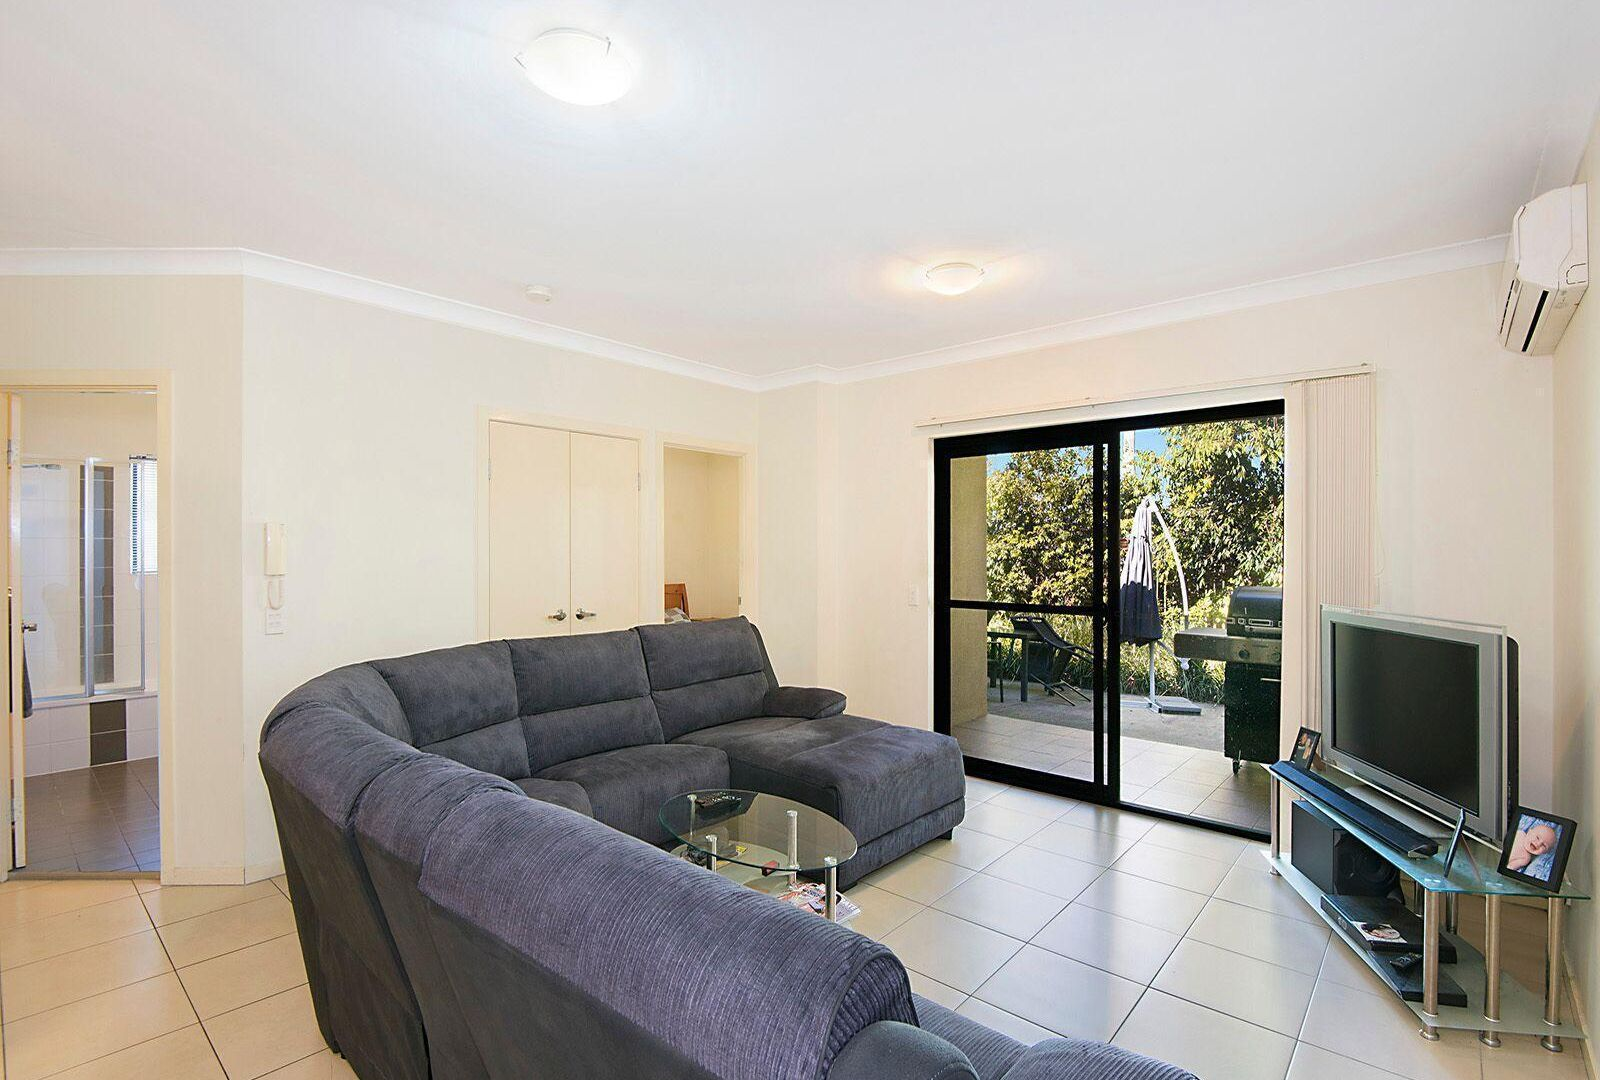 3/346 Zillmere Road, Zillmere QLD 4034, Image 1